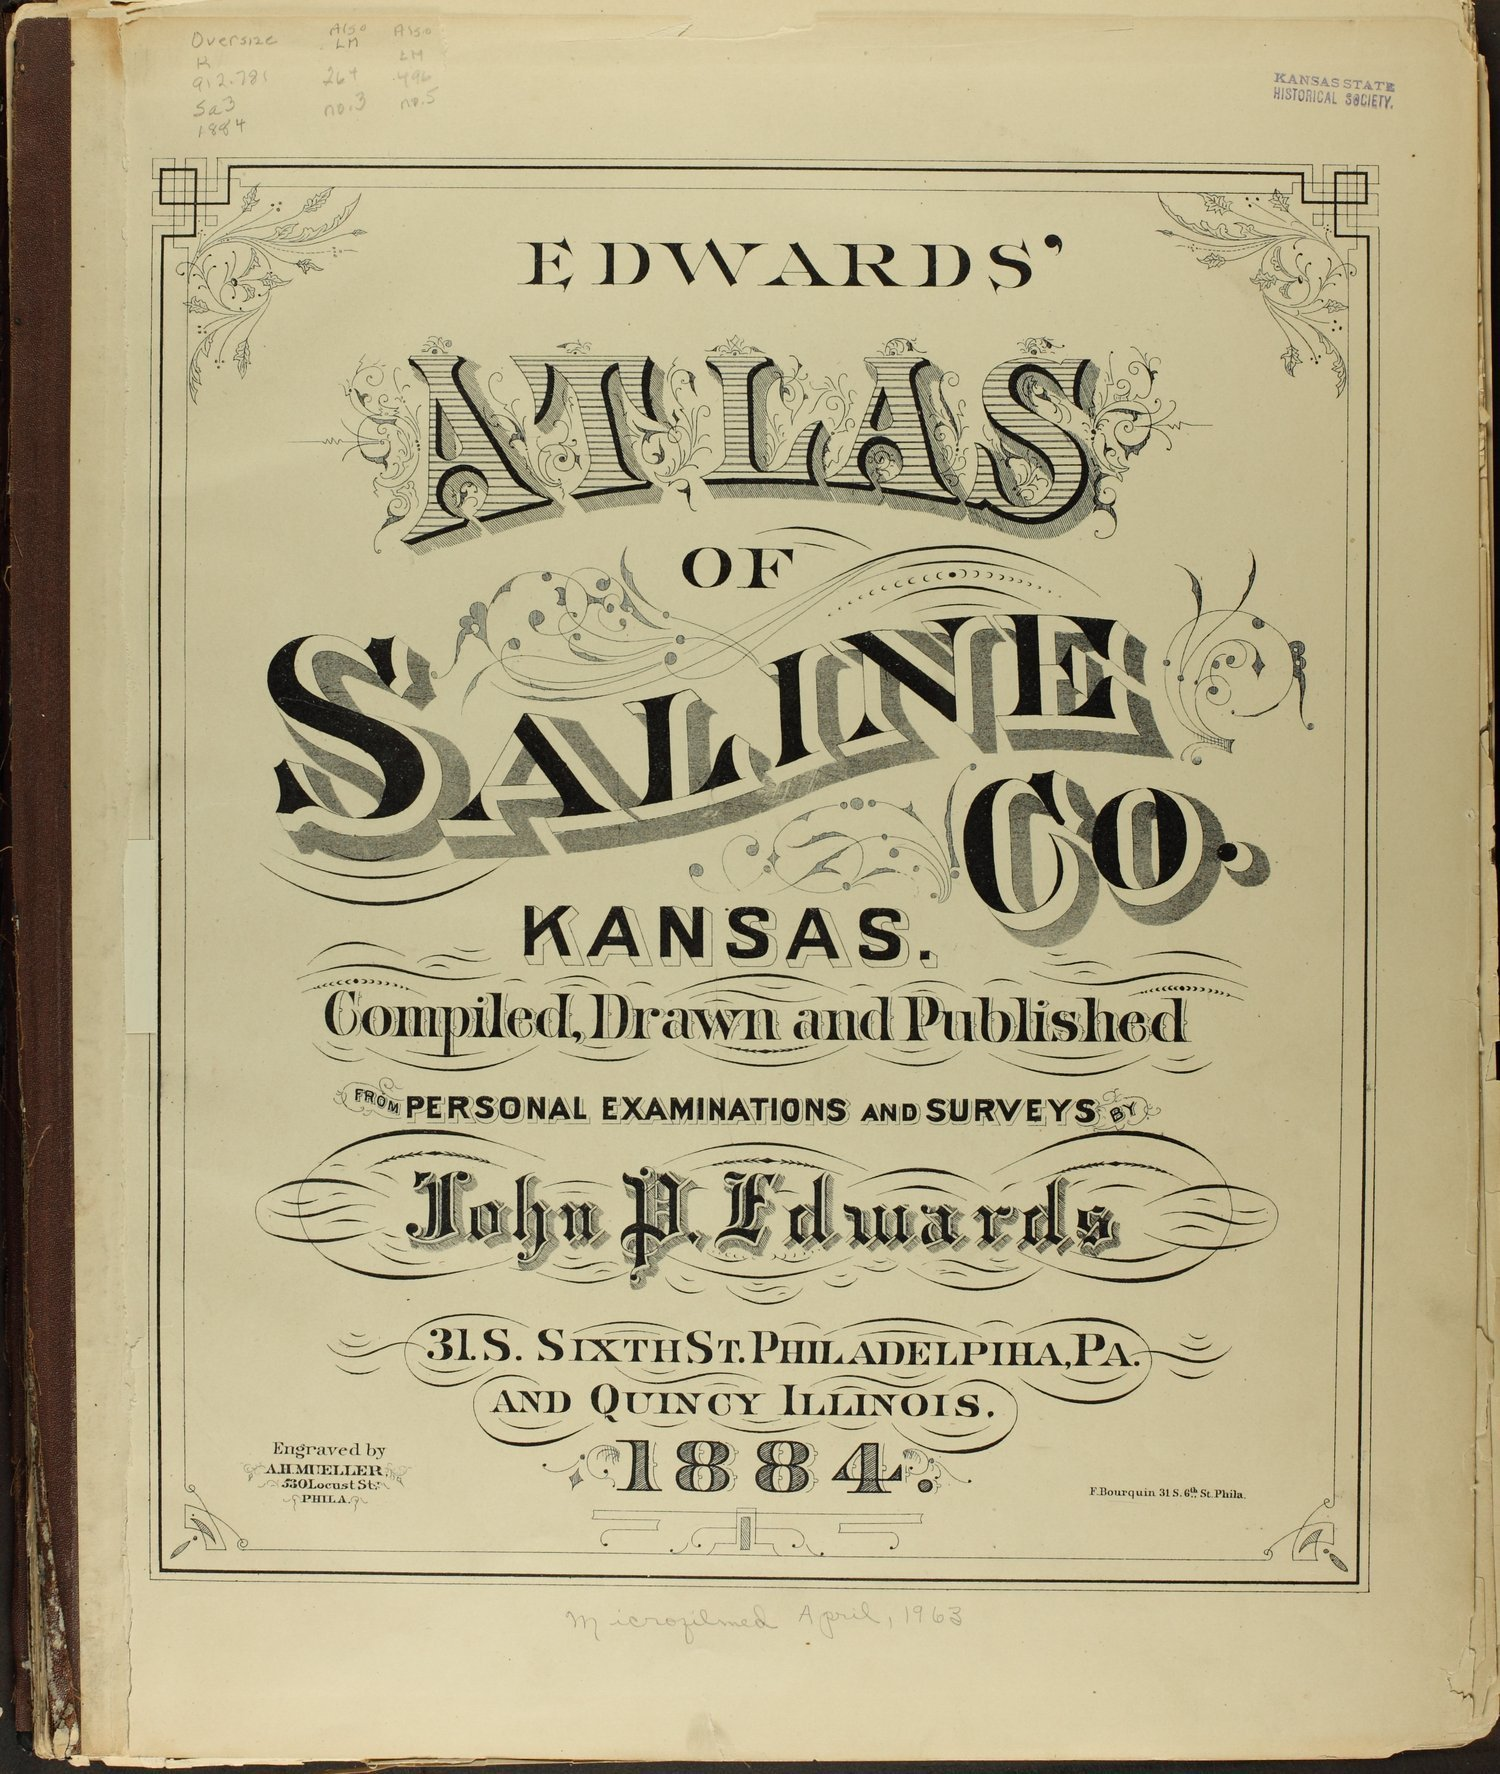 Edwards' Atlas of Saline Co., Kansas - Title Page